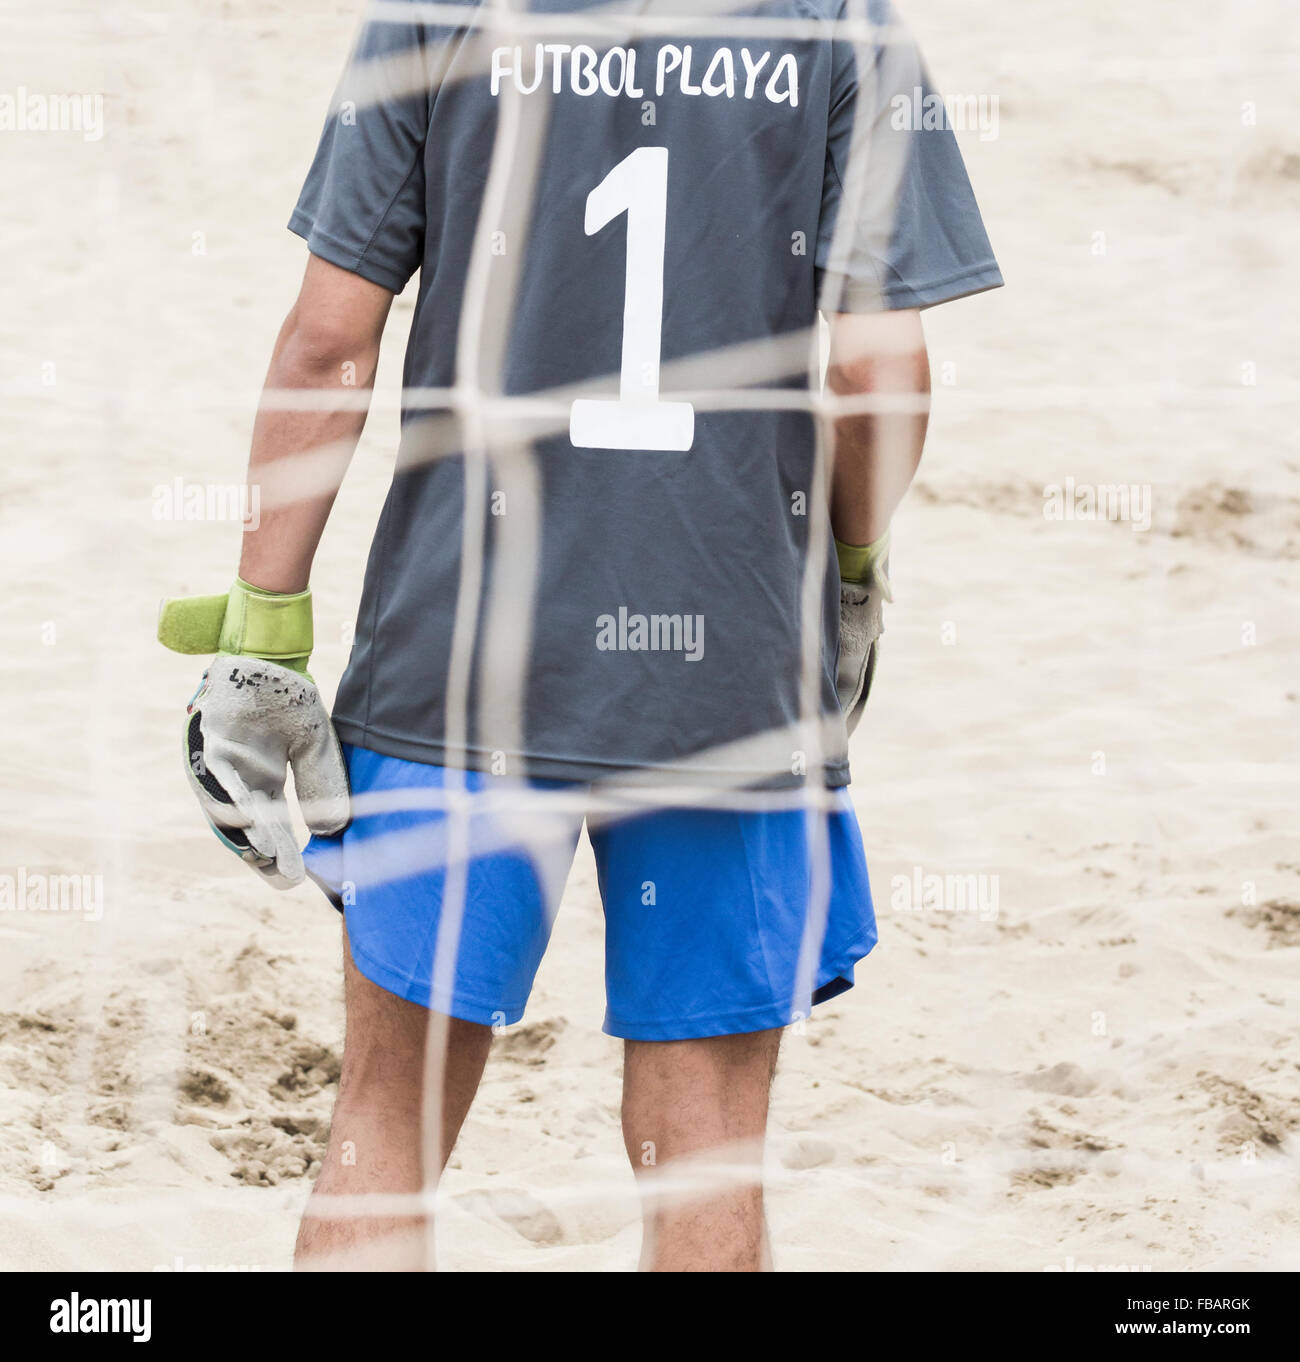 Rear view of goalkeeper at beach football tournament in Spain. Futbol Playa is Spanish for beach football - Stock Image